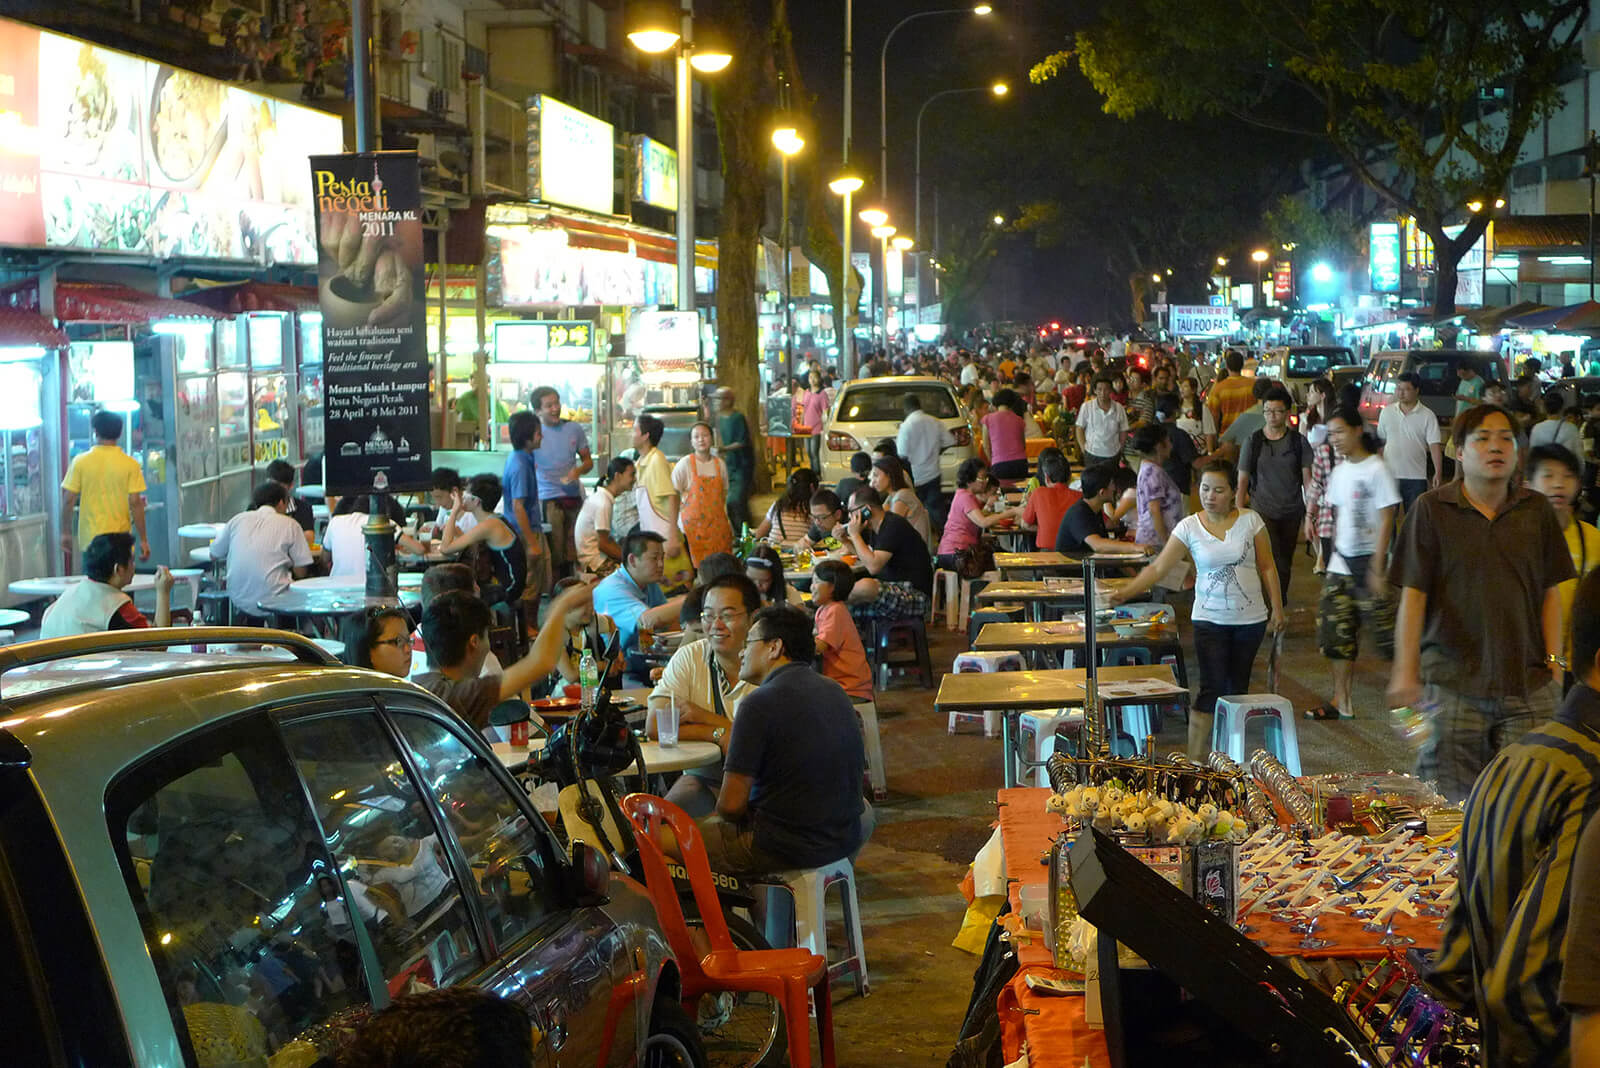 The delicious roadside food stalls of Jalan Alor in Kuala Lumpur, Malaysia